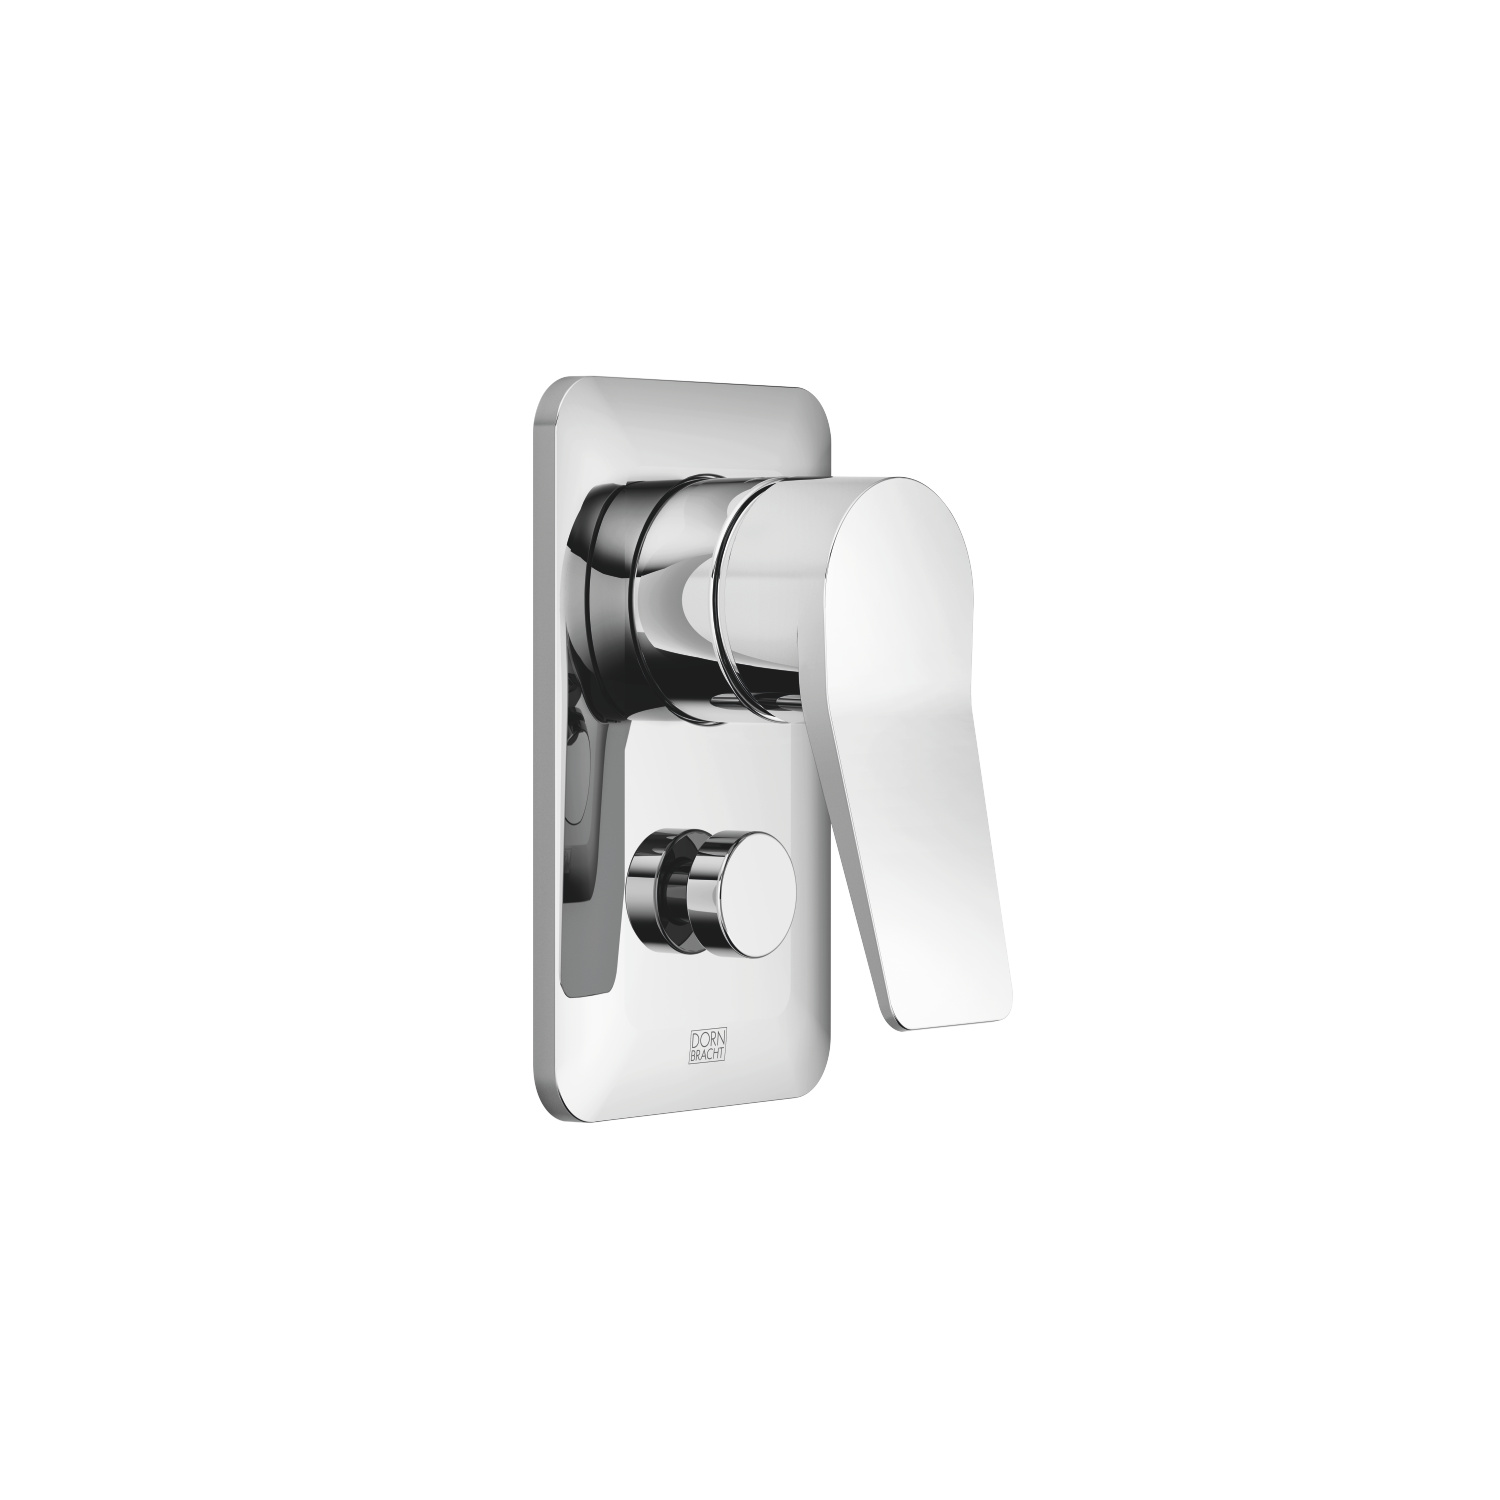 Concealed single-lever mixer with diverter - polished chrome - 36 120 845-00